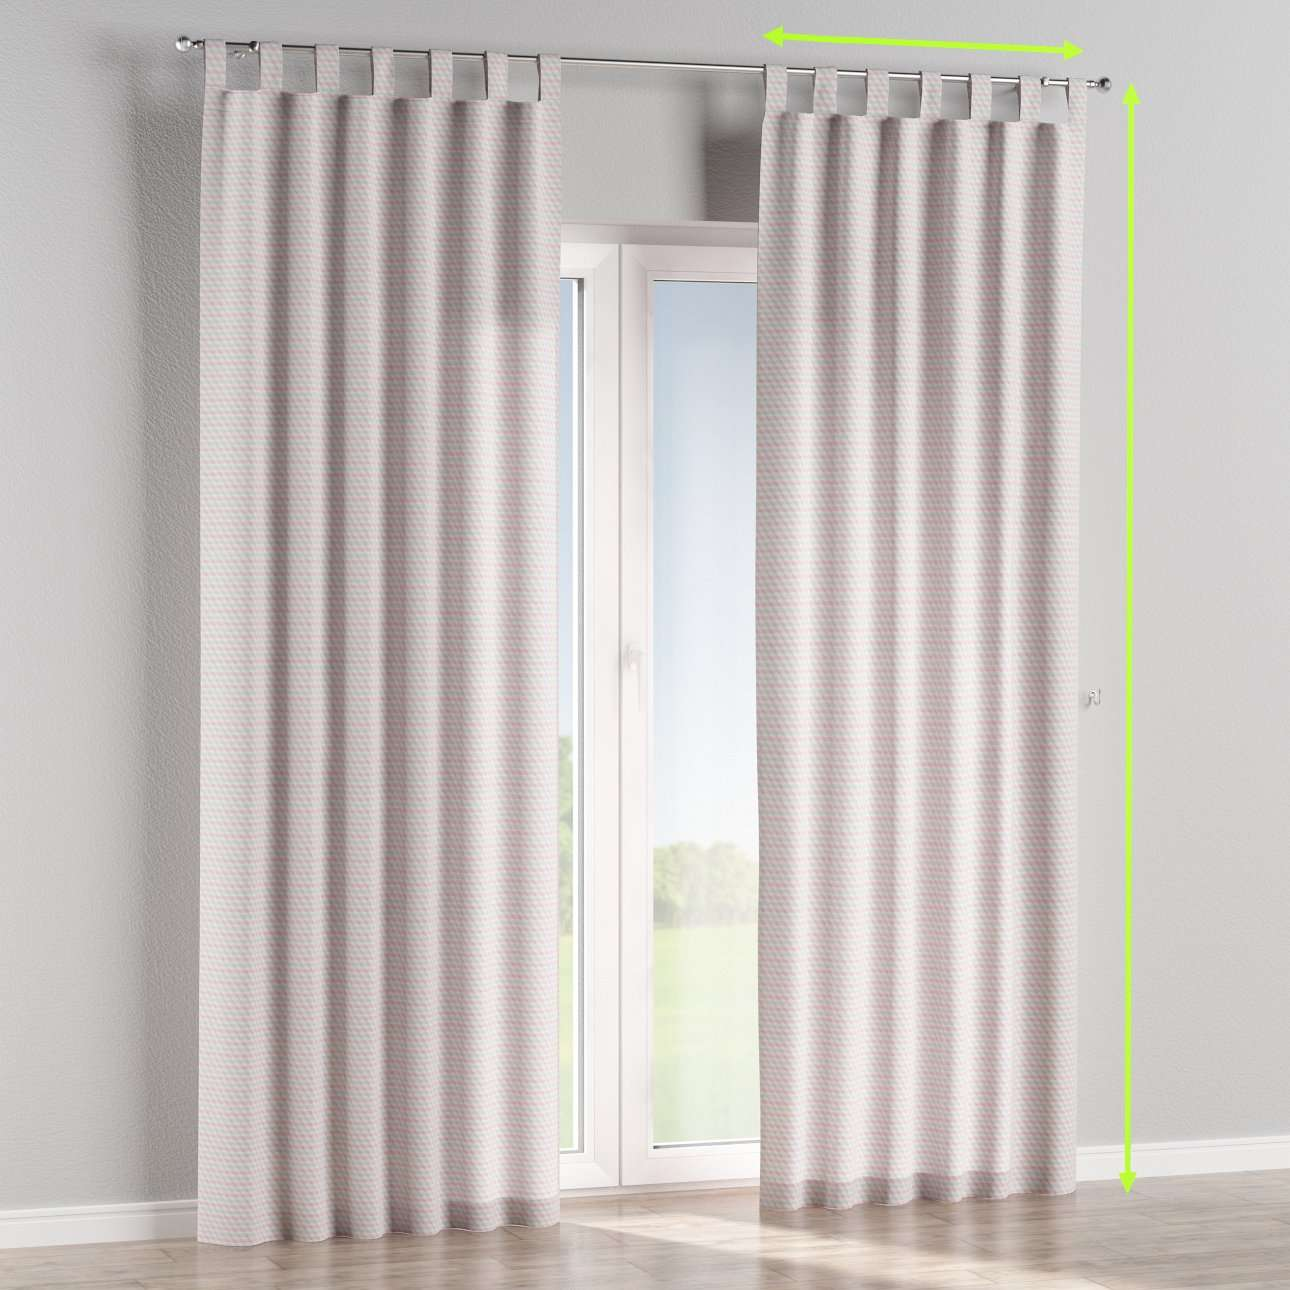 Tab top lined curtains in collection Rustica, fabric: 140-30